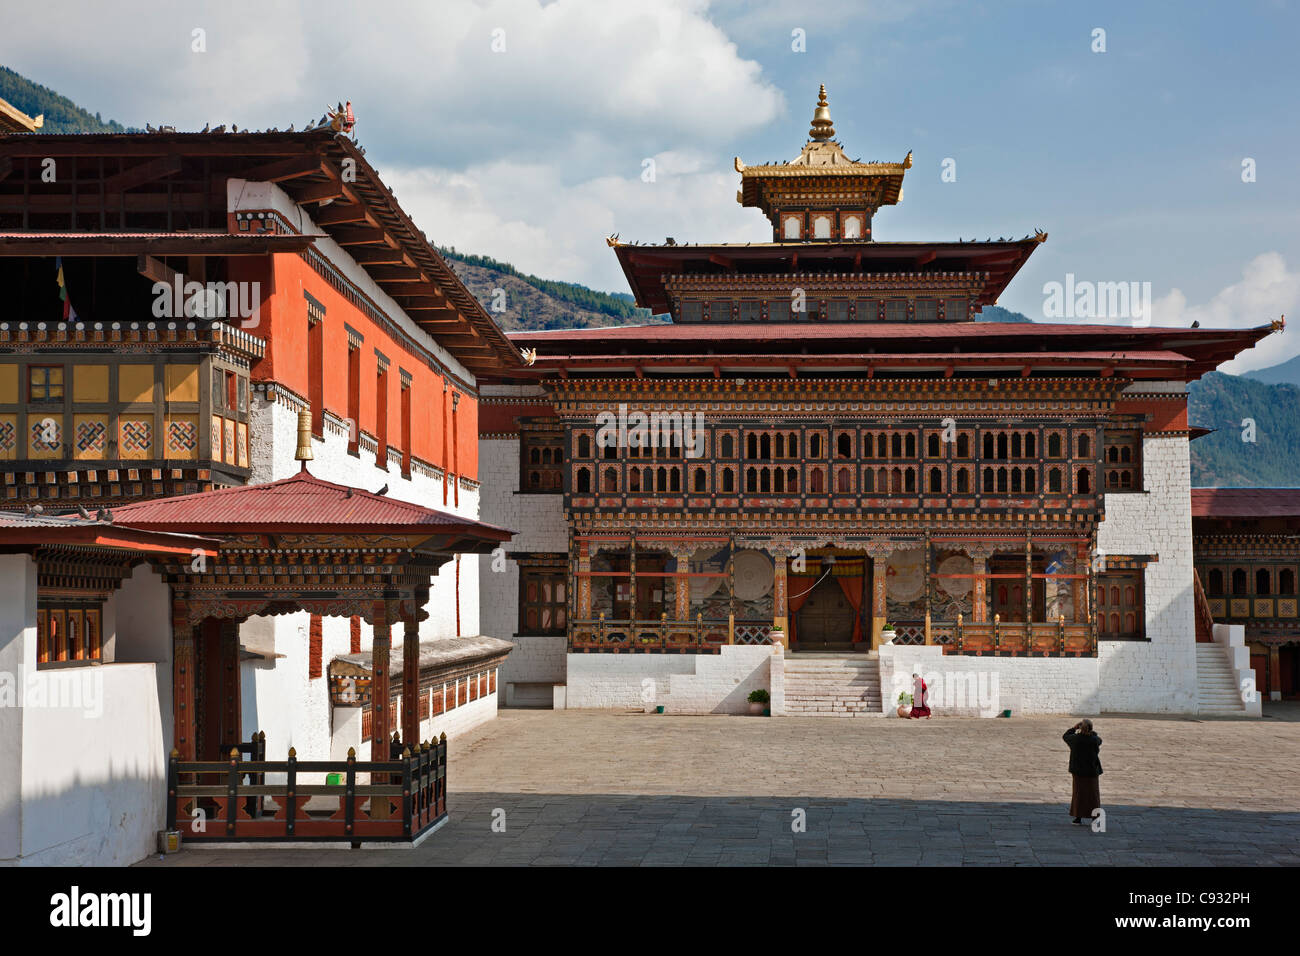 Ornate Monastic buildings surround the courtyard of Trashi Chhoe Dzong in Thimphu. - Stock Image